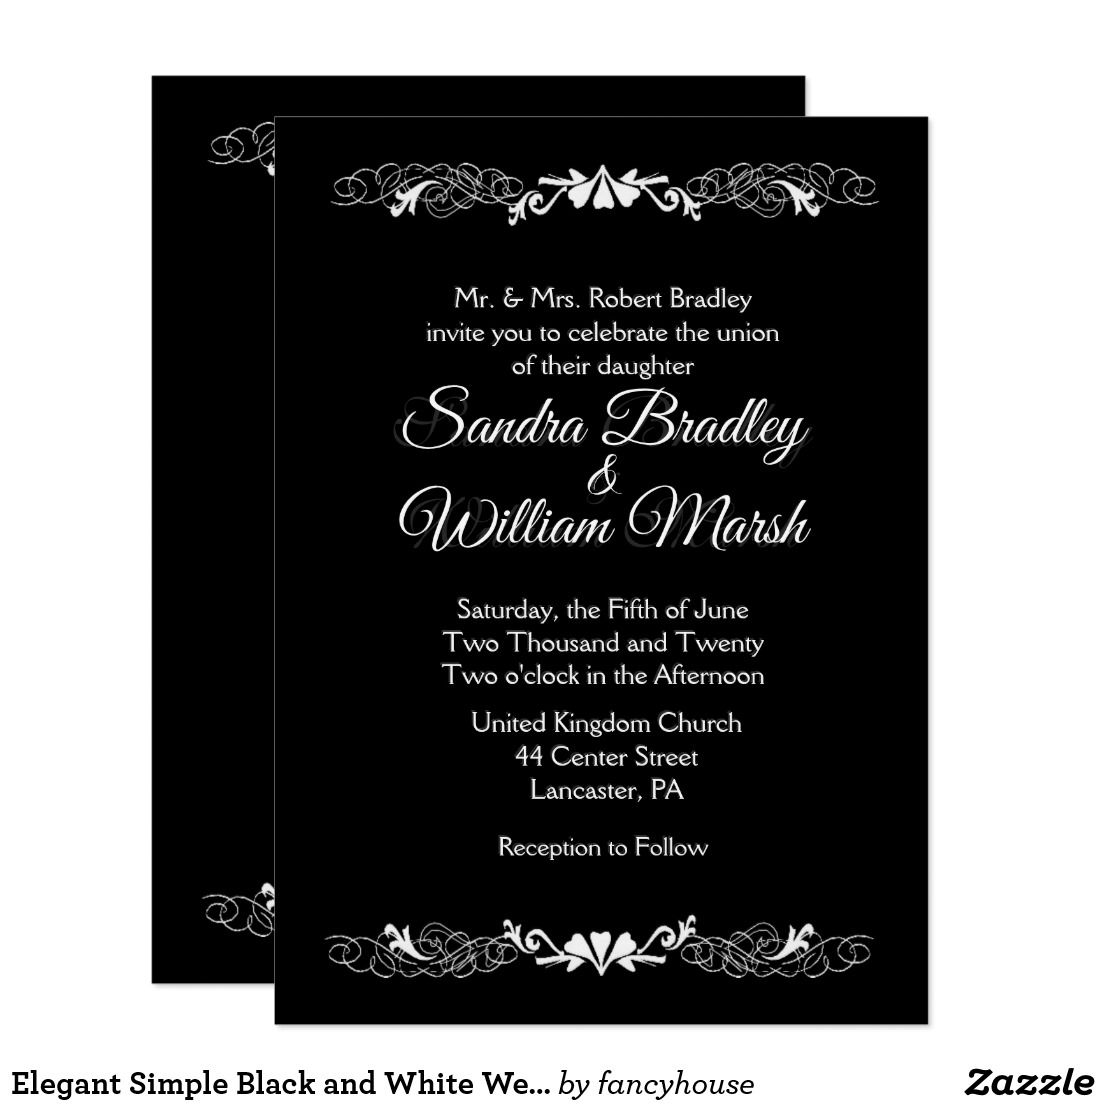 Elegant Simple Black and White Wedding Invitation Elegant and Weddings